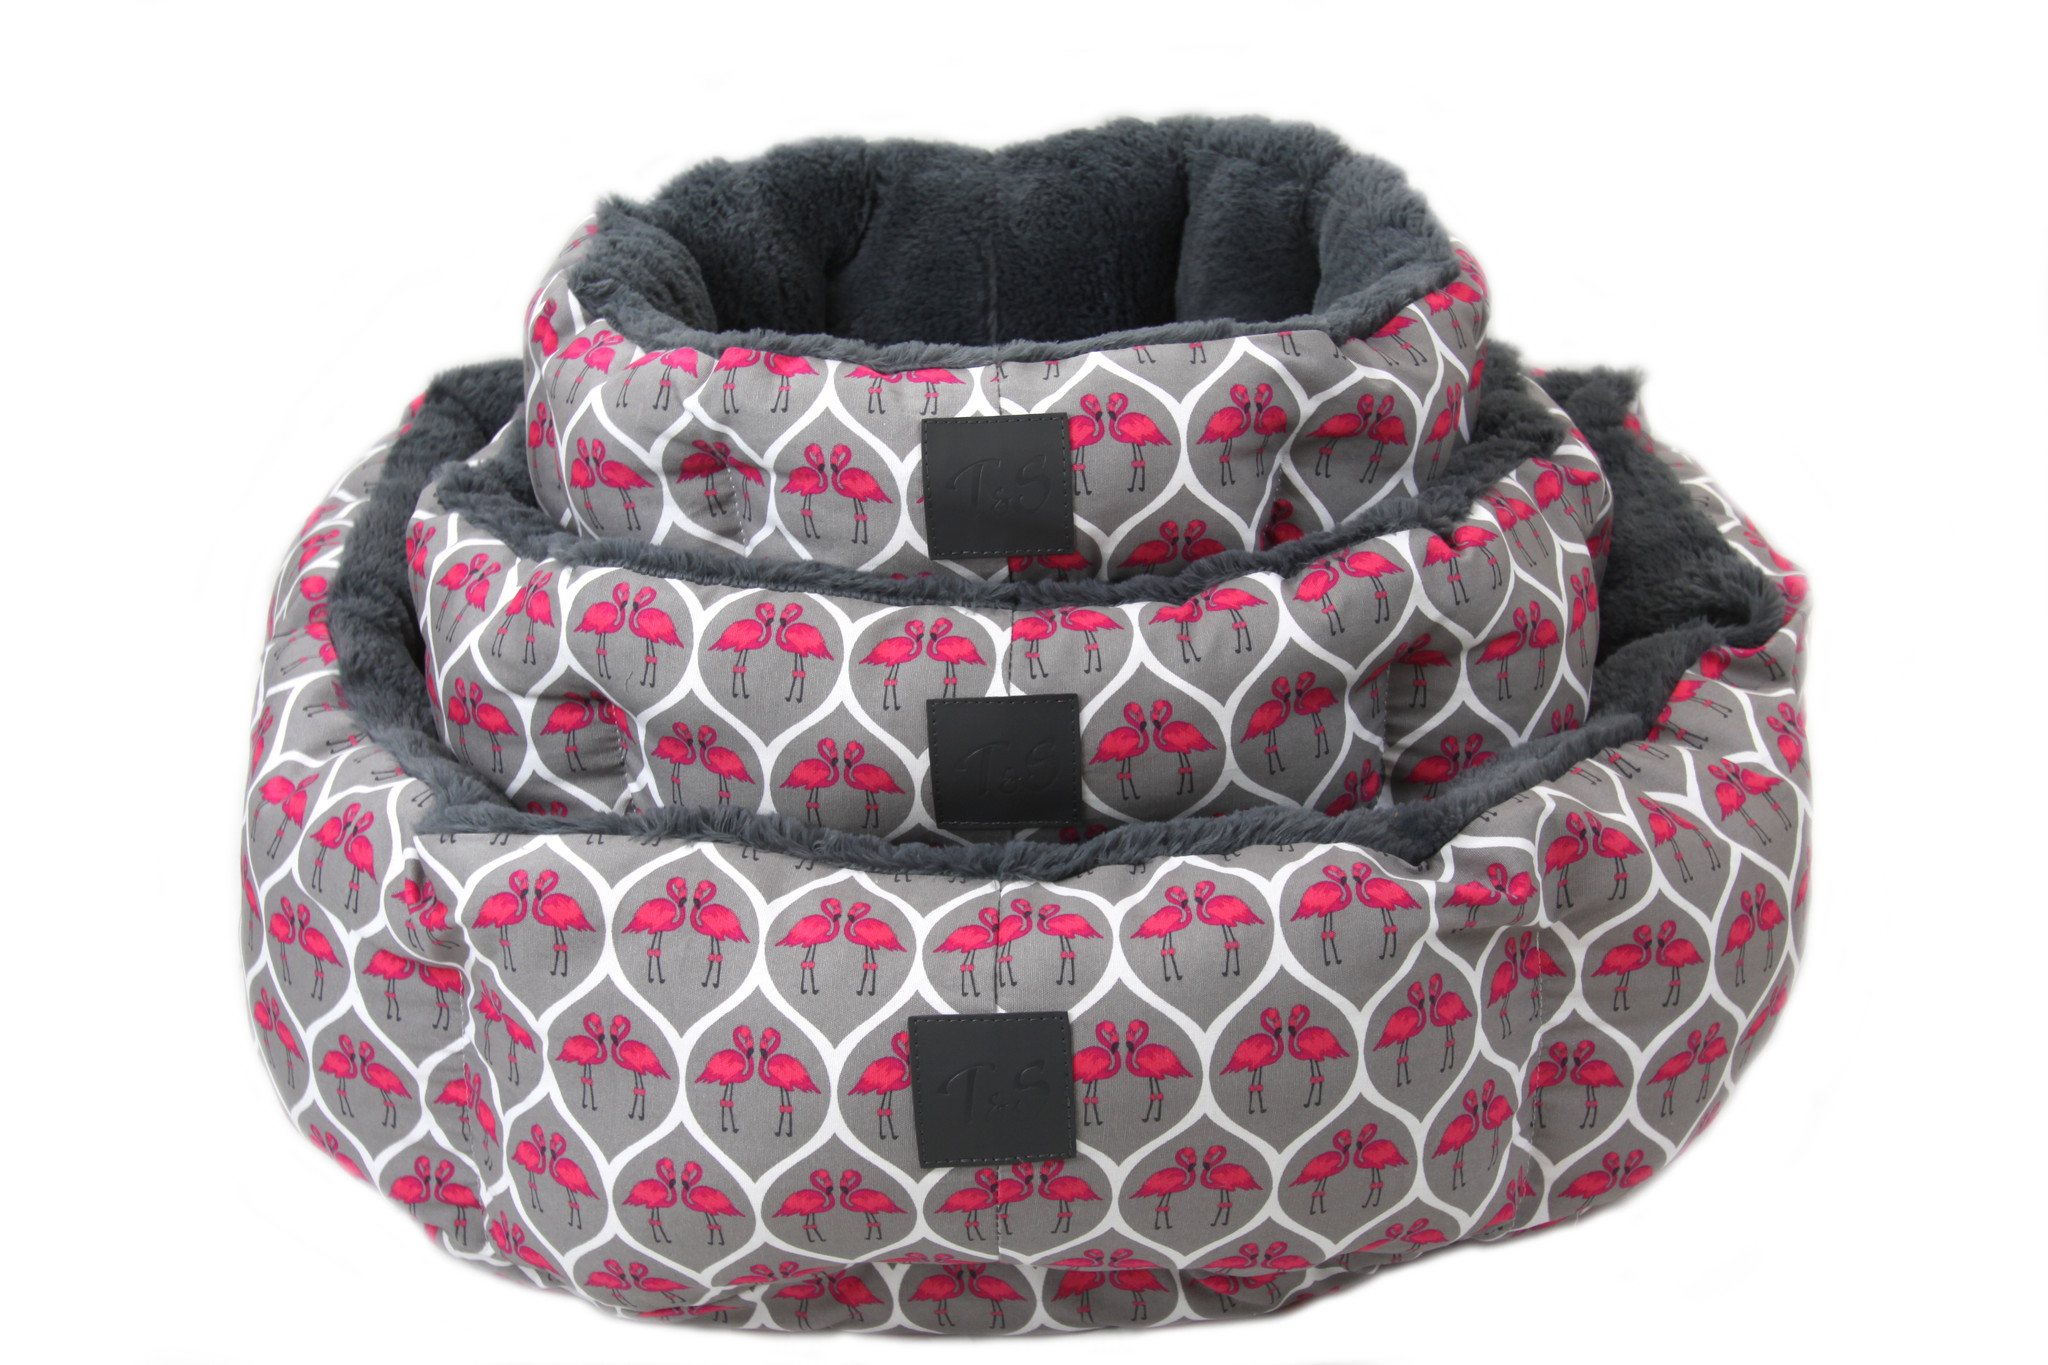 Quirky Flamingo Pet Bed